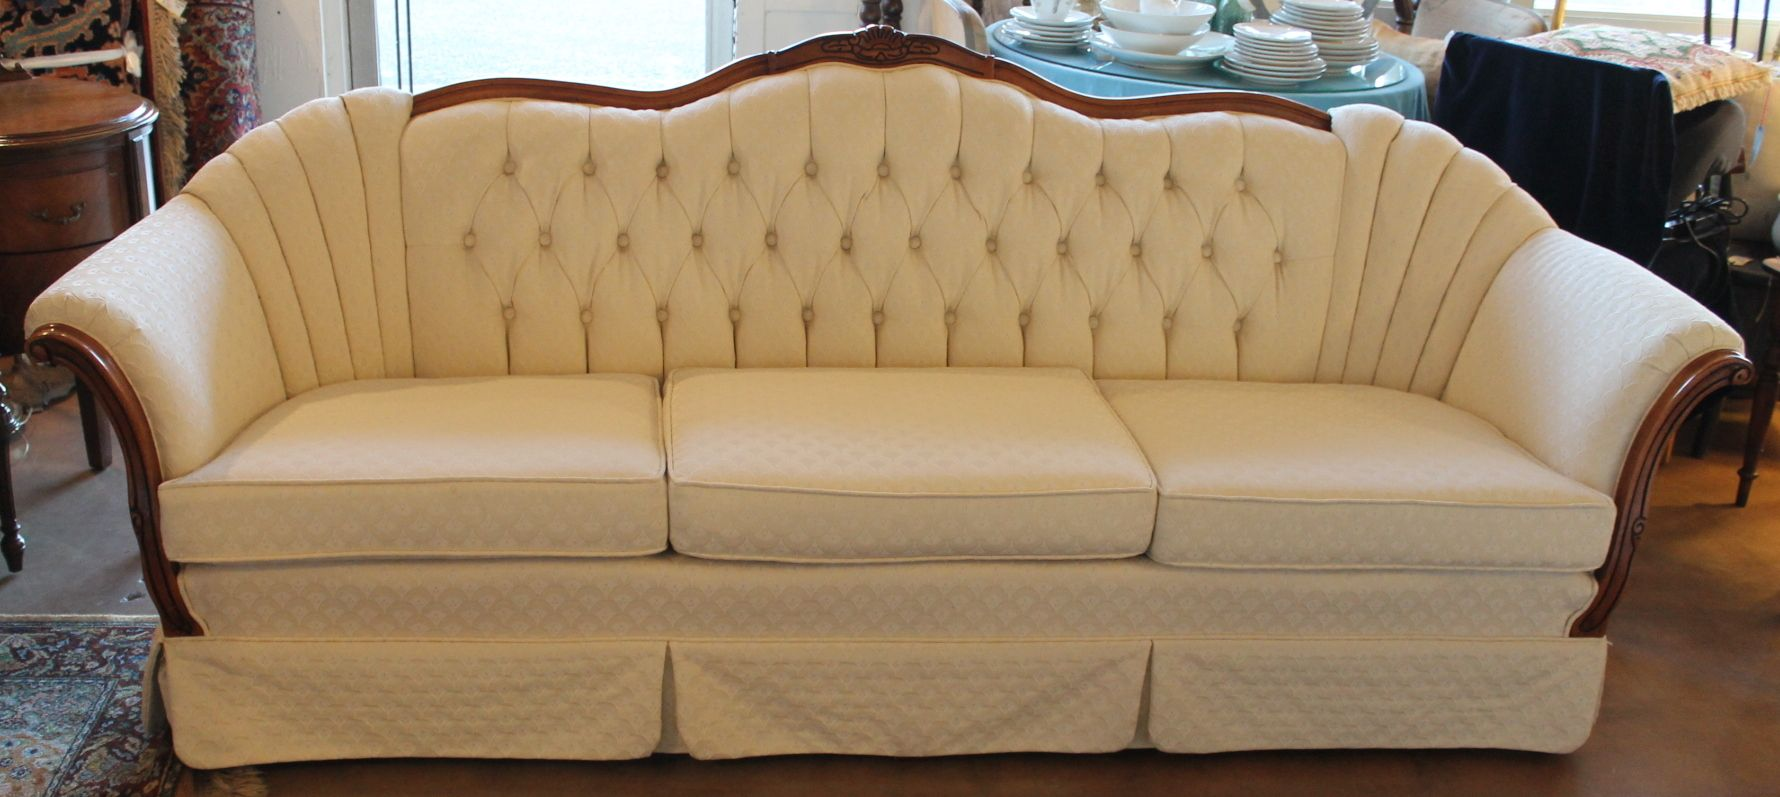 Vintage Sofa Lounge Winston Salem Formal French Provincial Sofa By Kingsley Furniture Gone To A